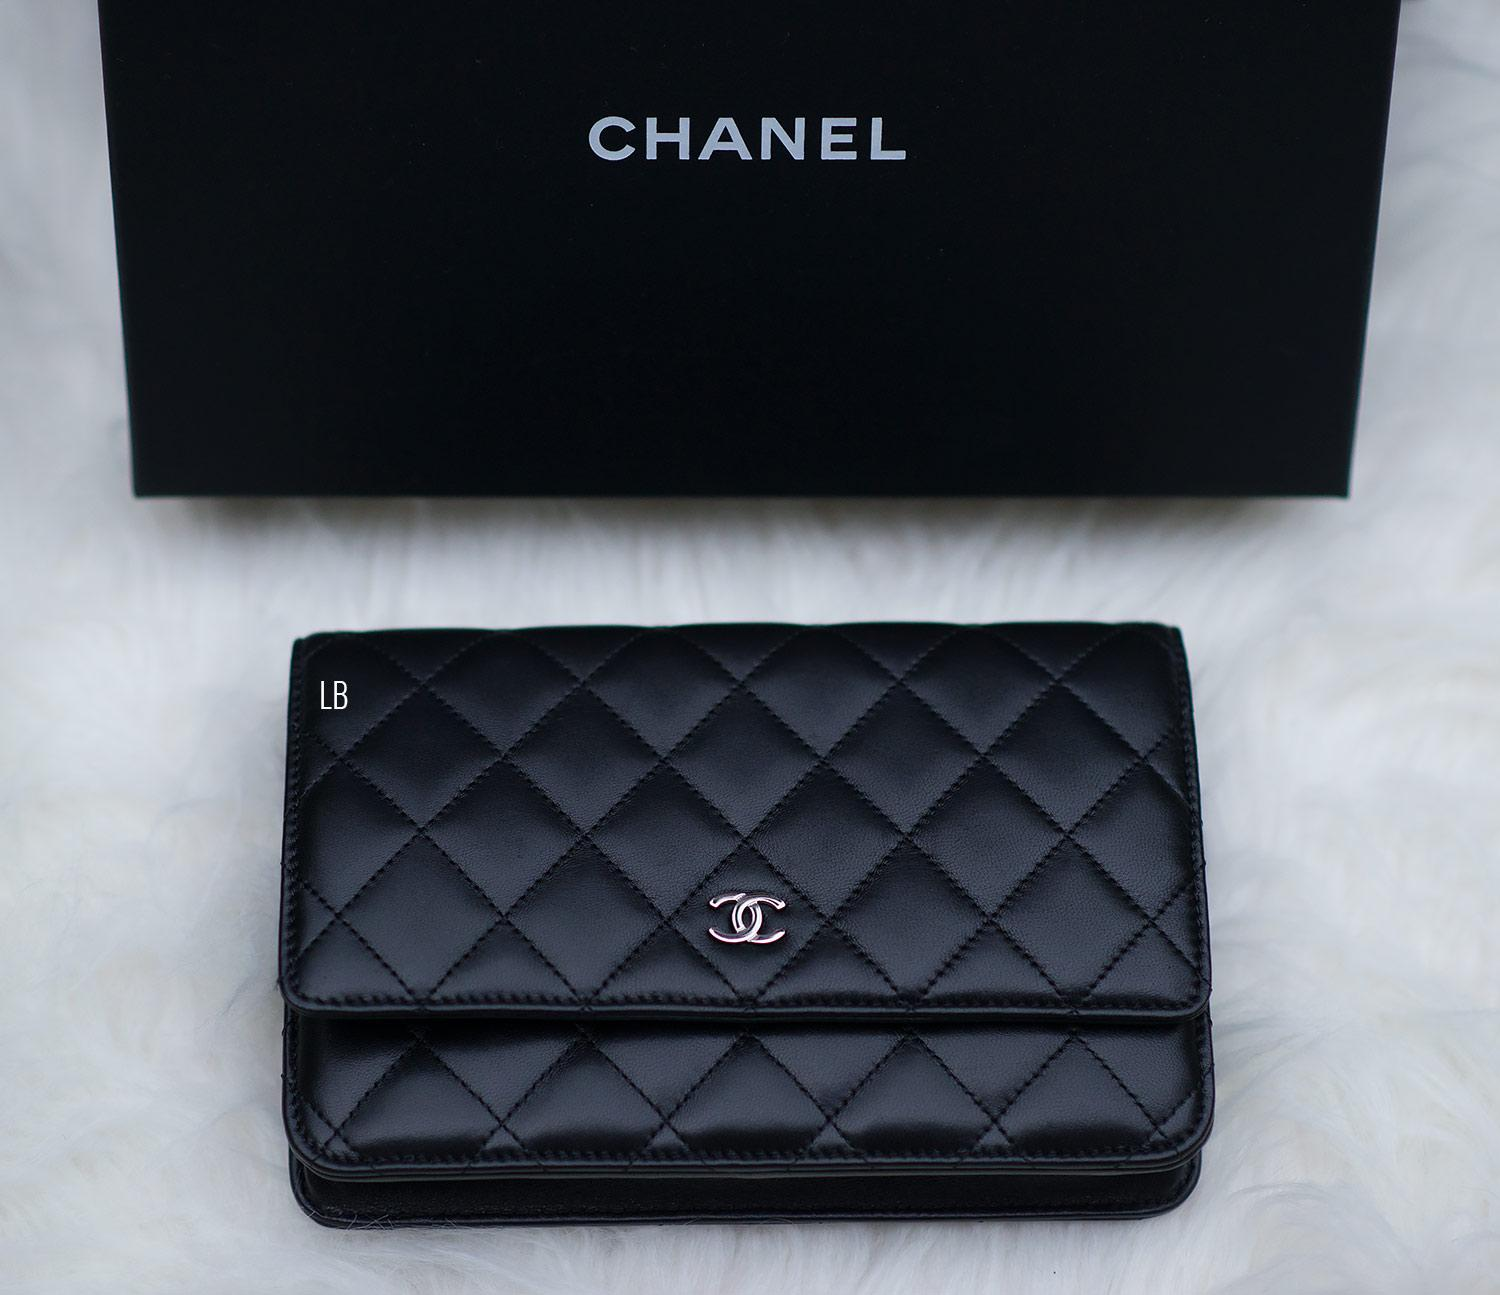 63350aa6b5d0 My New Chanel Wallet On Chain  WOC  Bag In Black